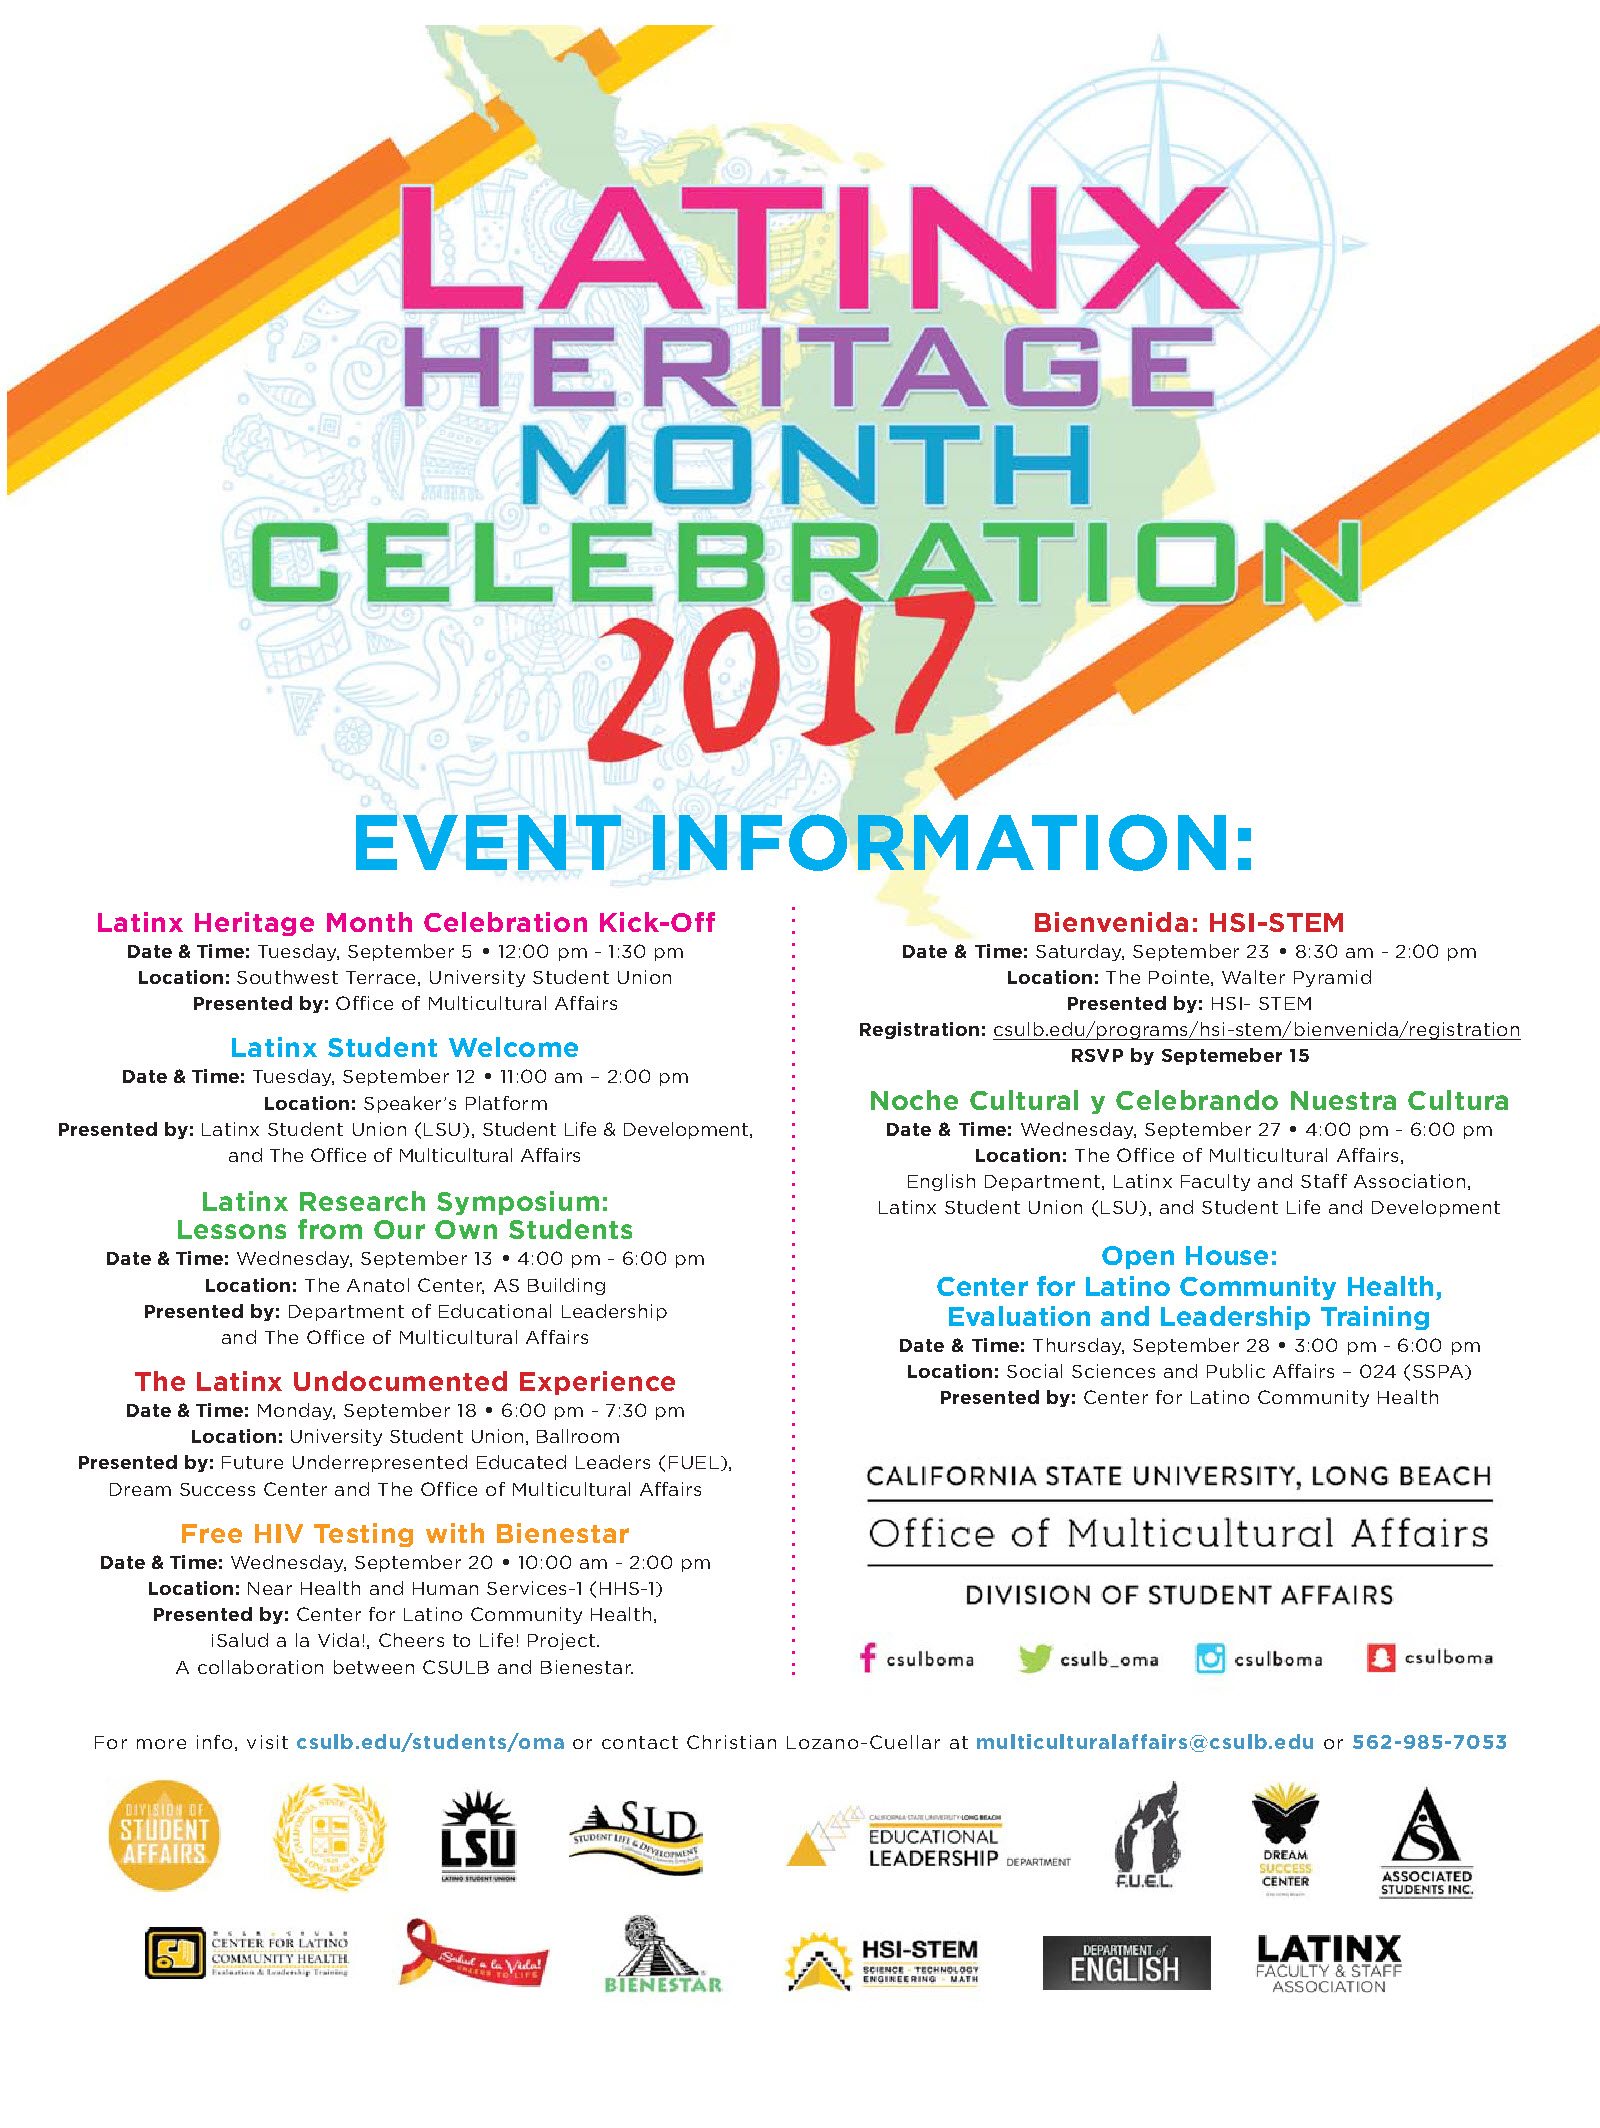 Latin X Heritage Month Activities Flyer